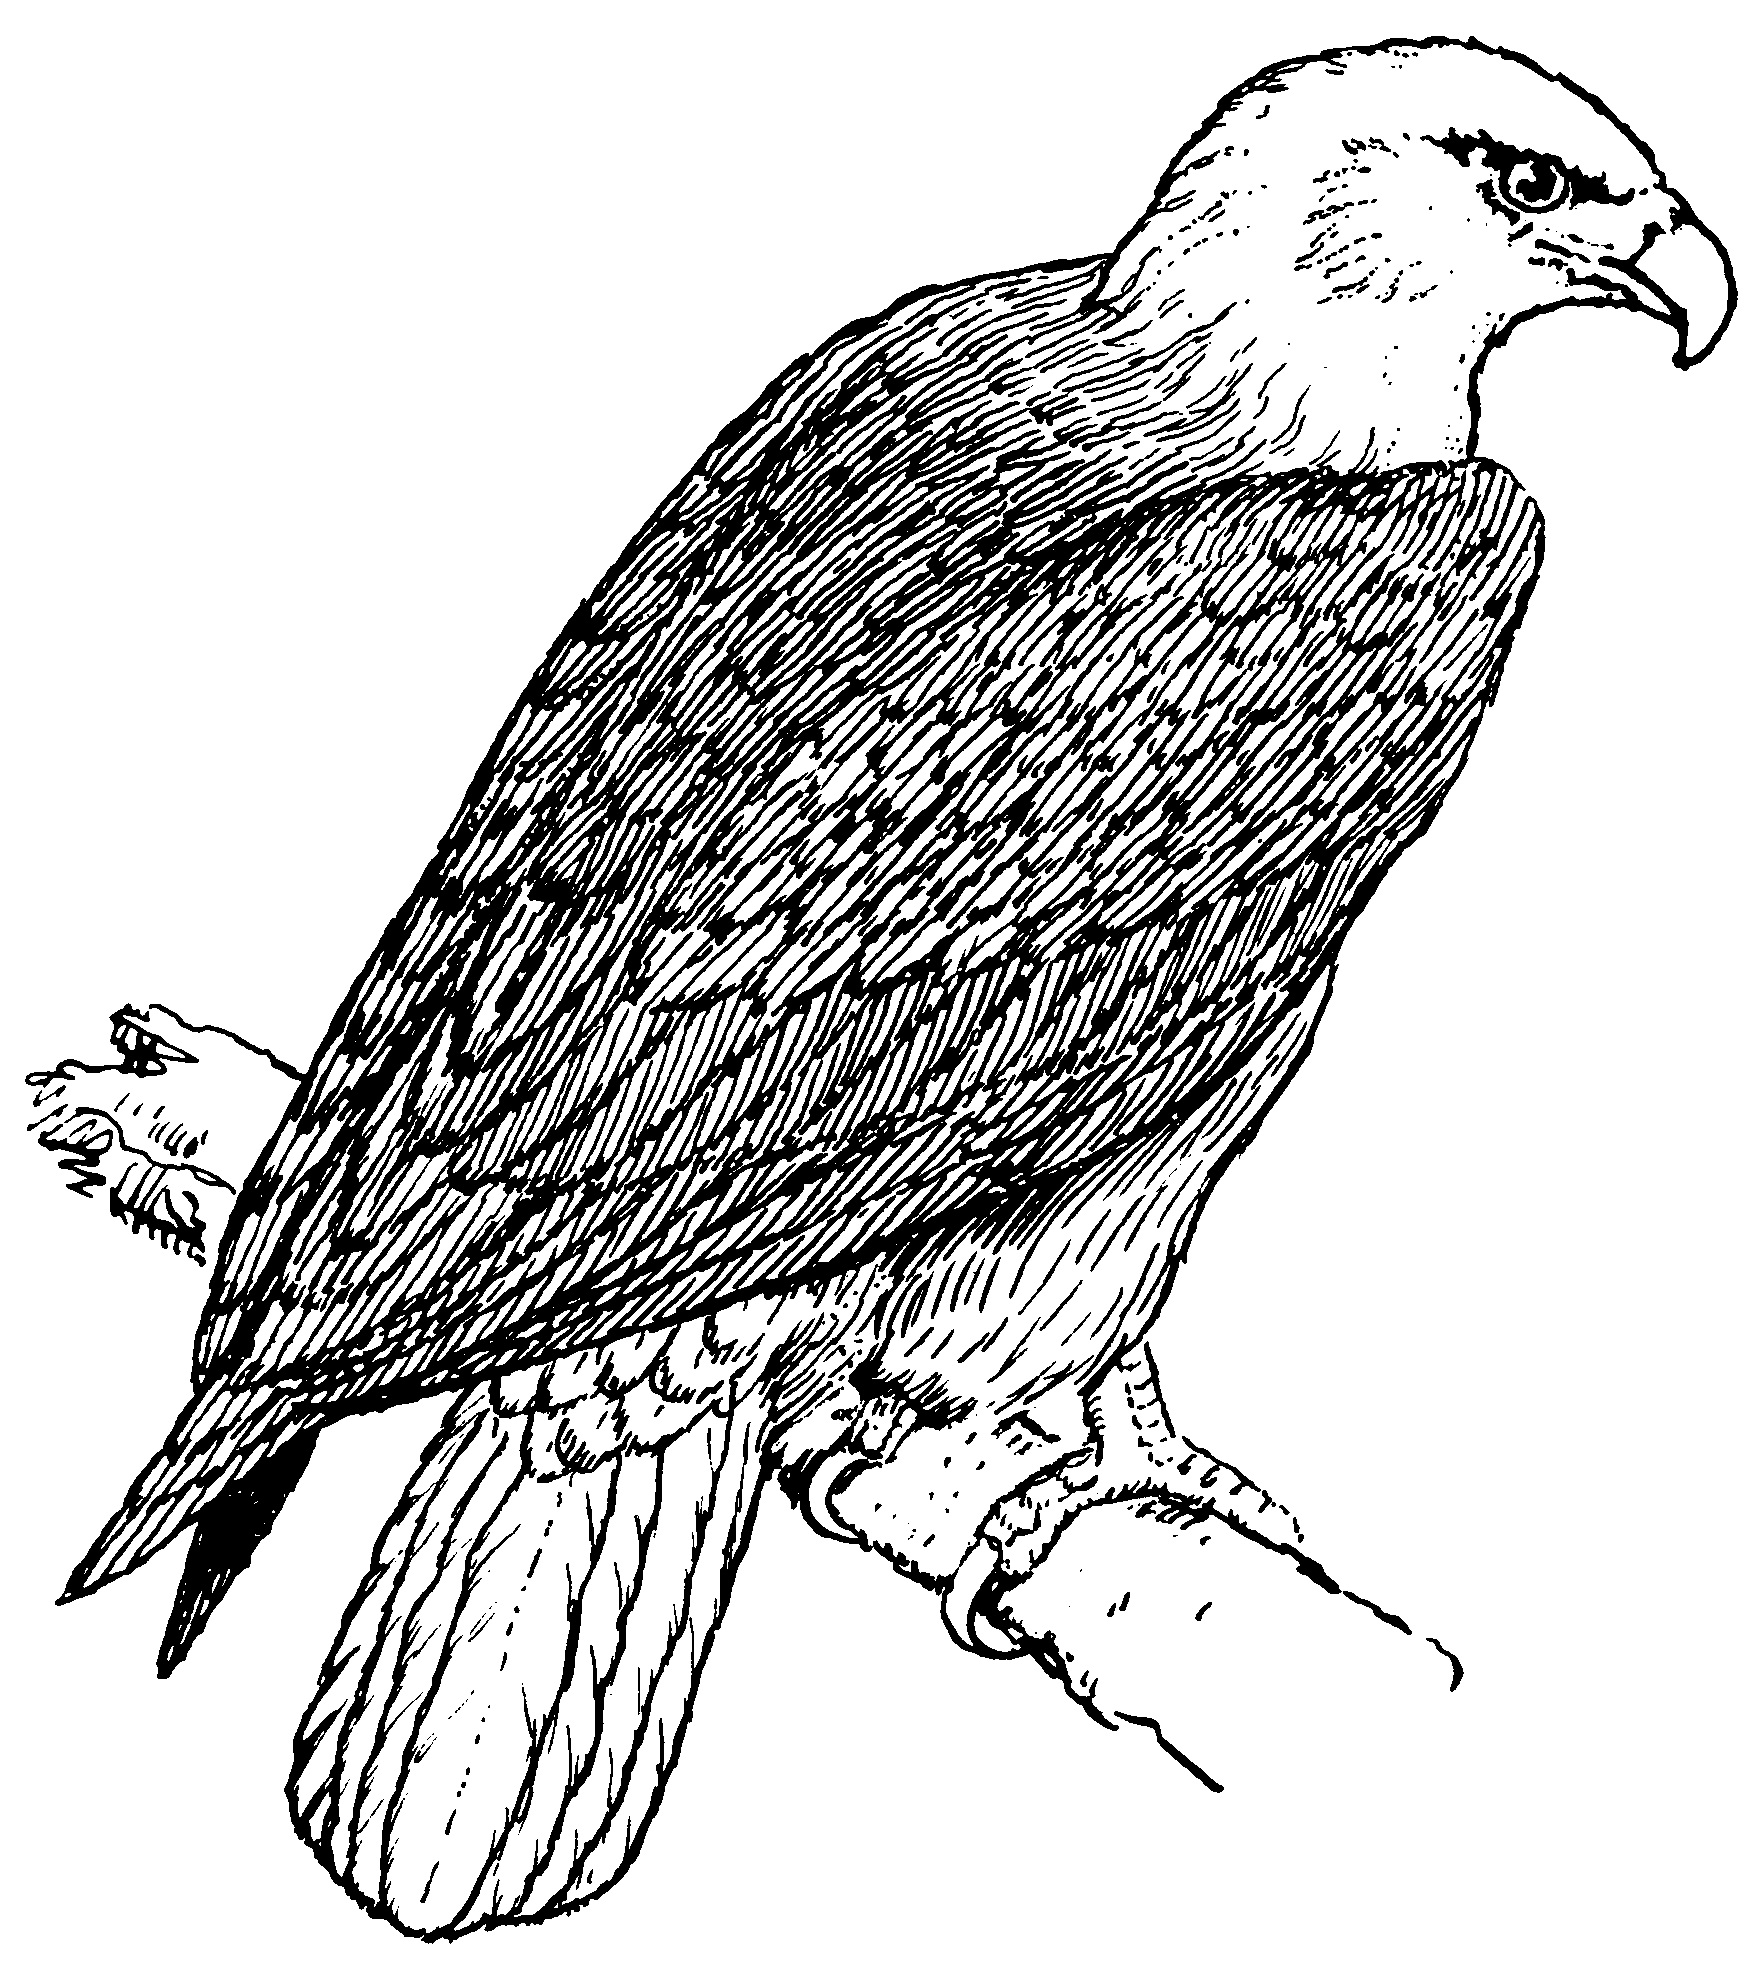 Patriotic eagle coloring pages - Bald Eagle Coloring Page